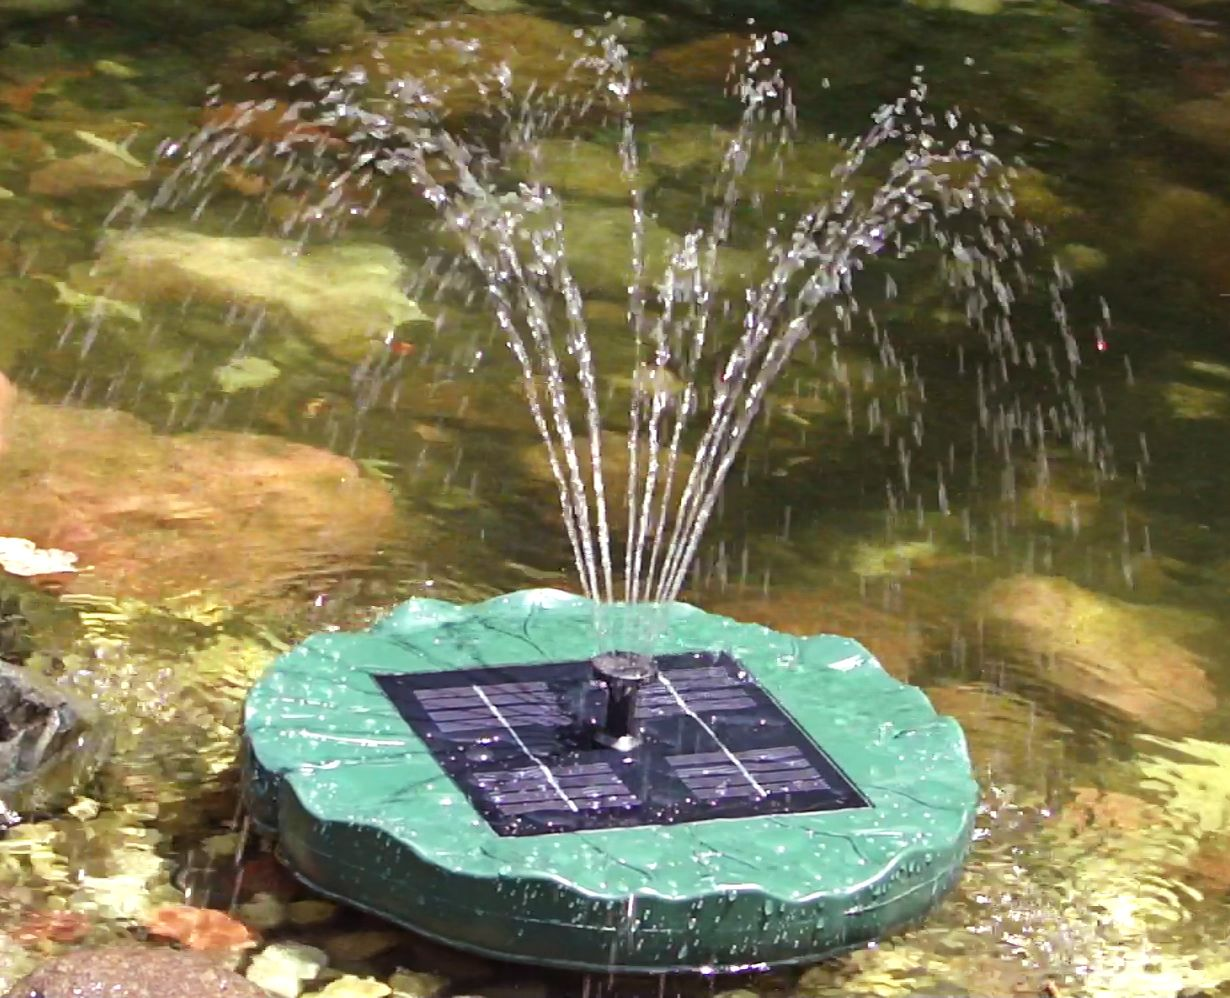 Pin On Water Water Every Where 400 x 300